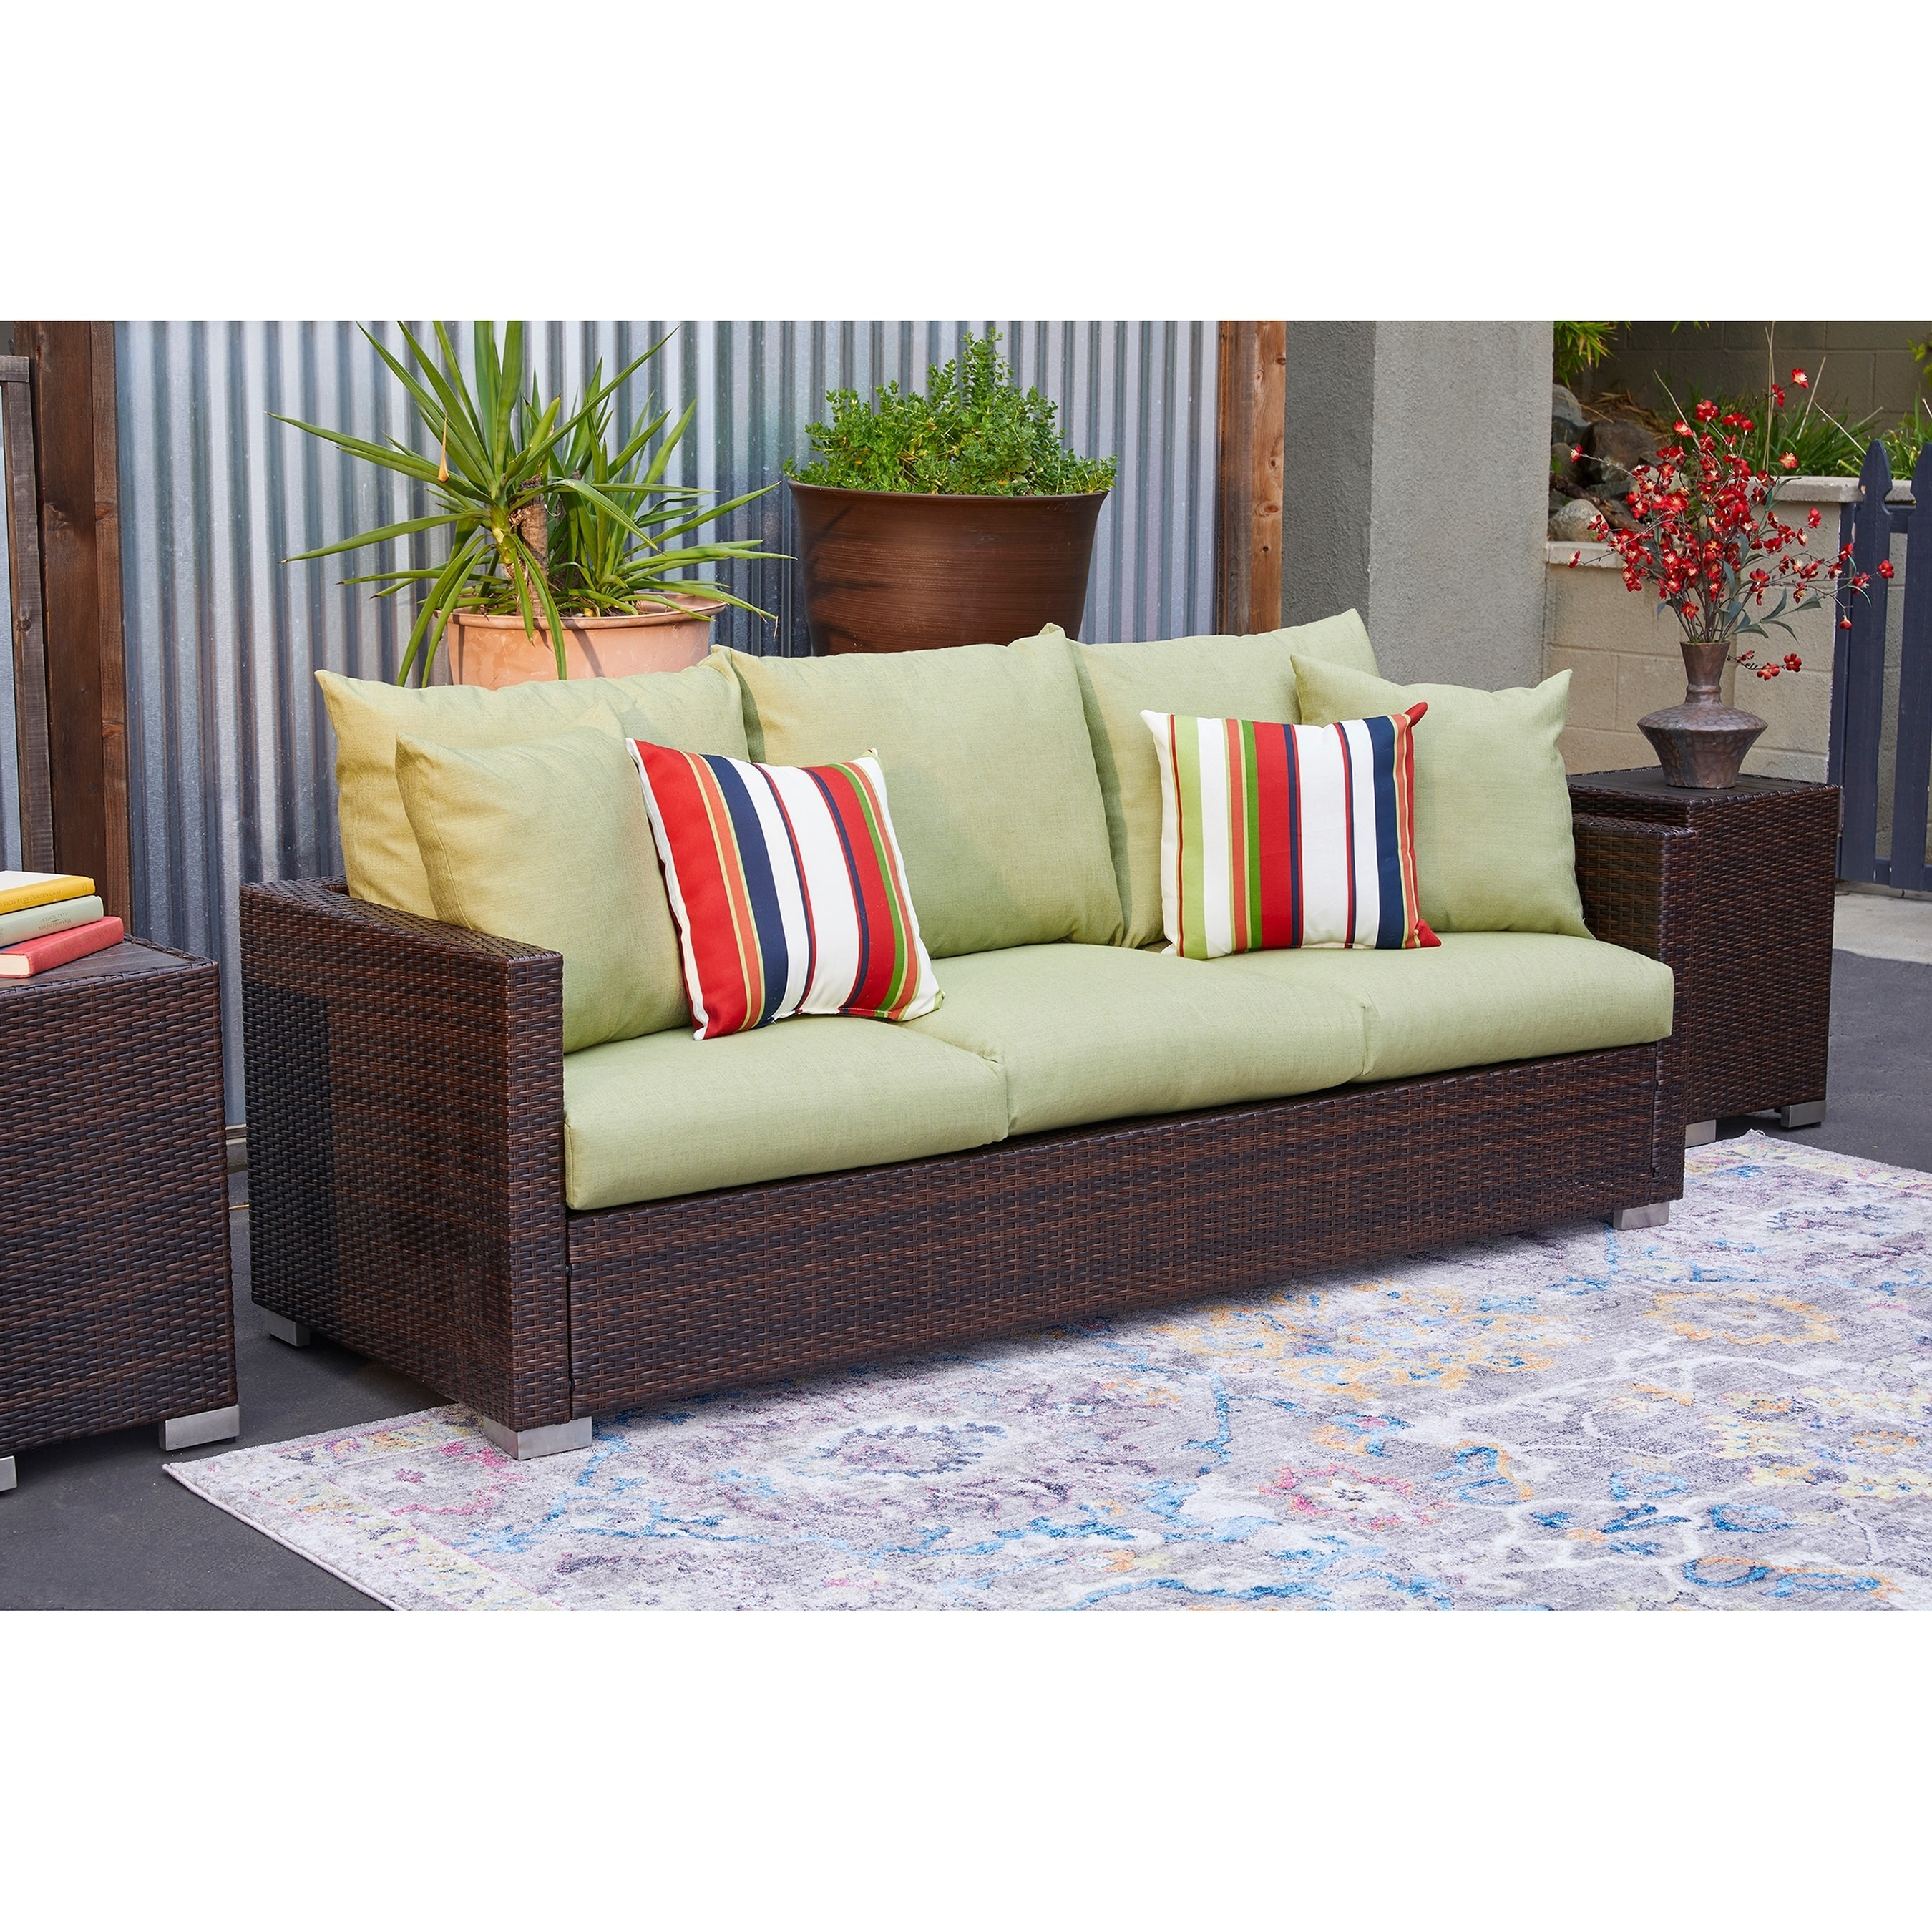 Details About Handy Living Aldrich Indoor Outdoor Brown Resin Rattan Sofa With Green Cushions